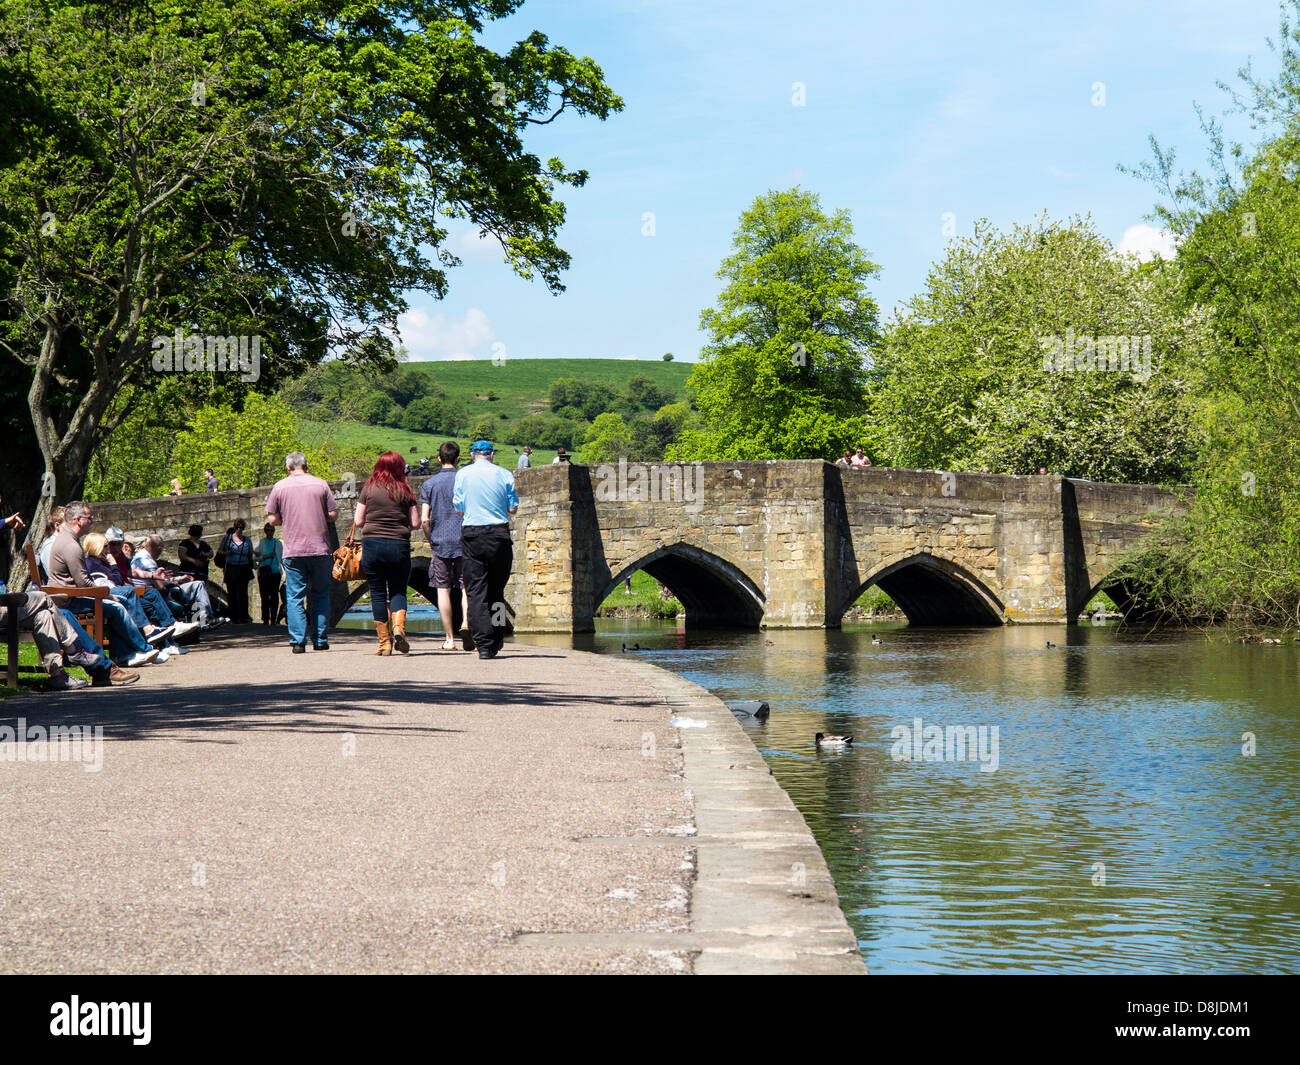 Sitting and walking beside the River Wye in Bakewell, Derbyshire, England. - Stock Image